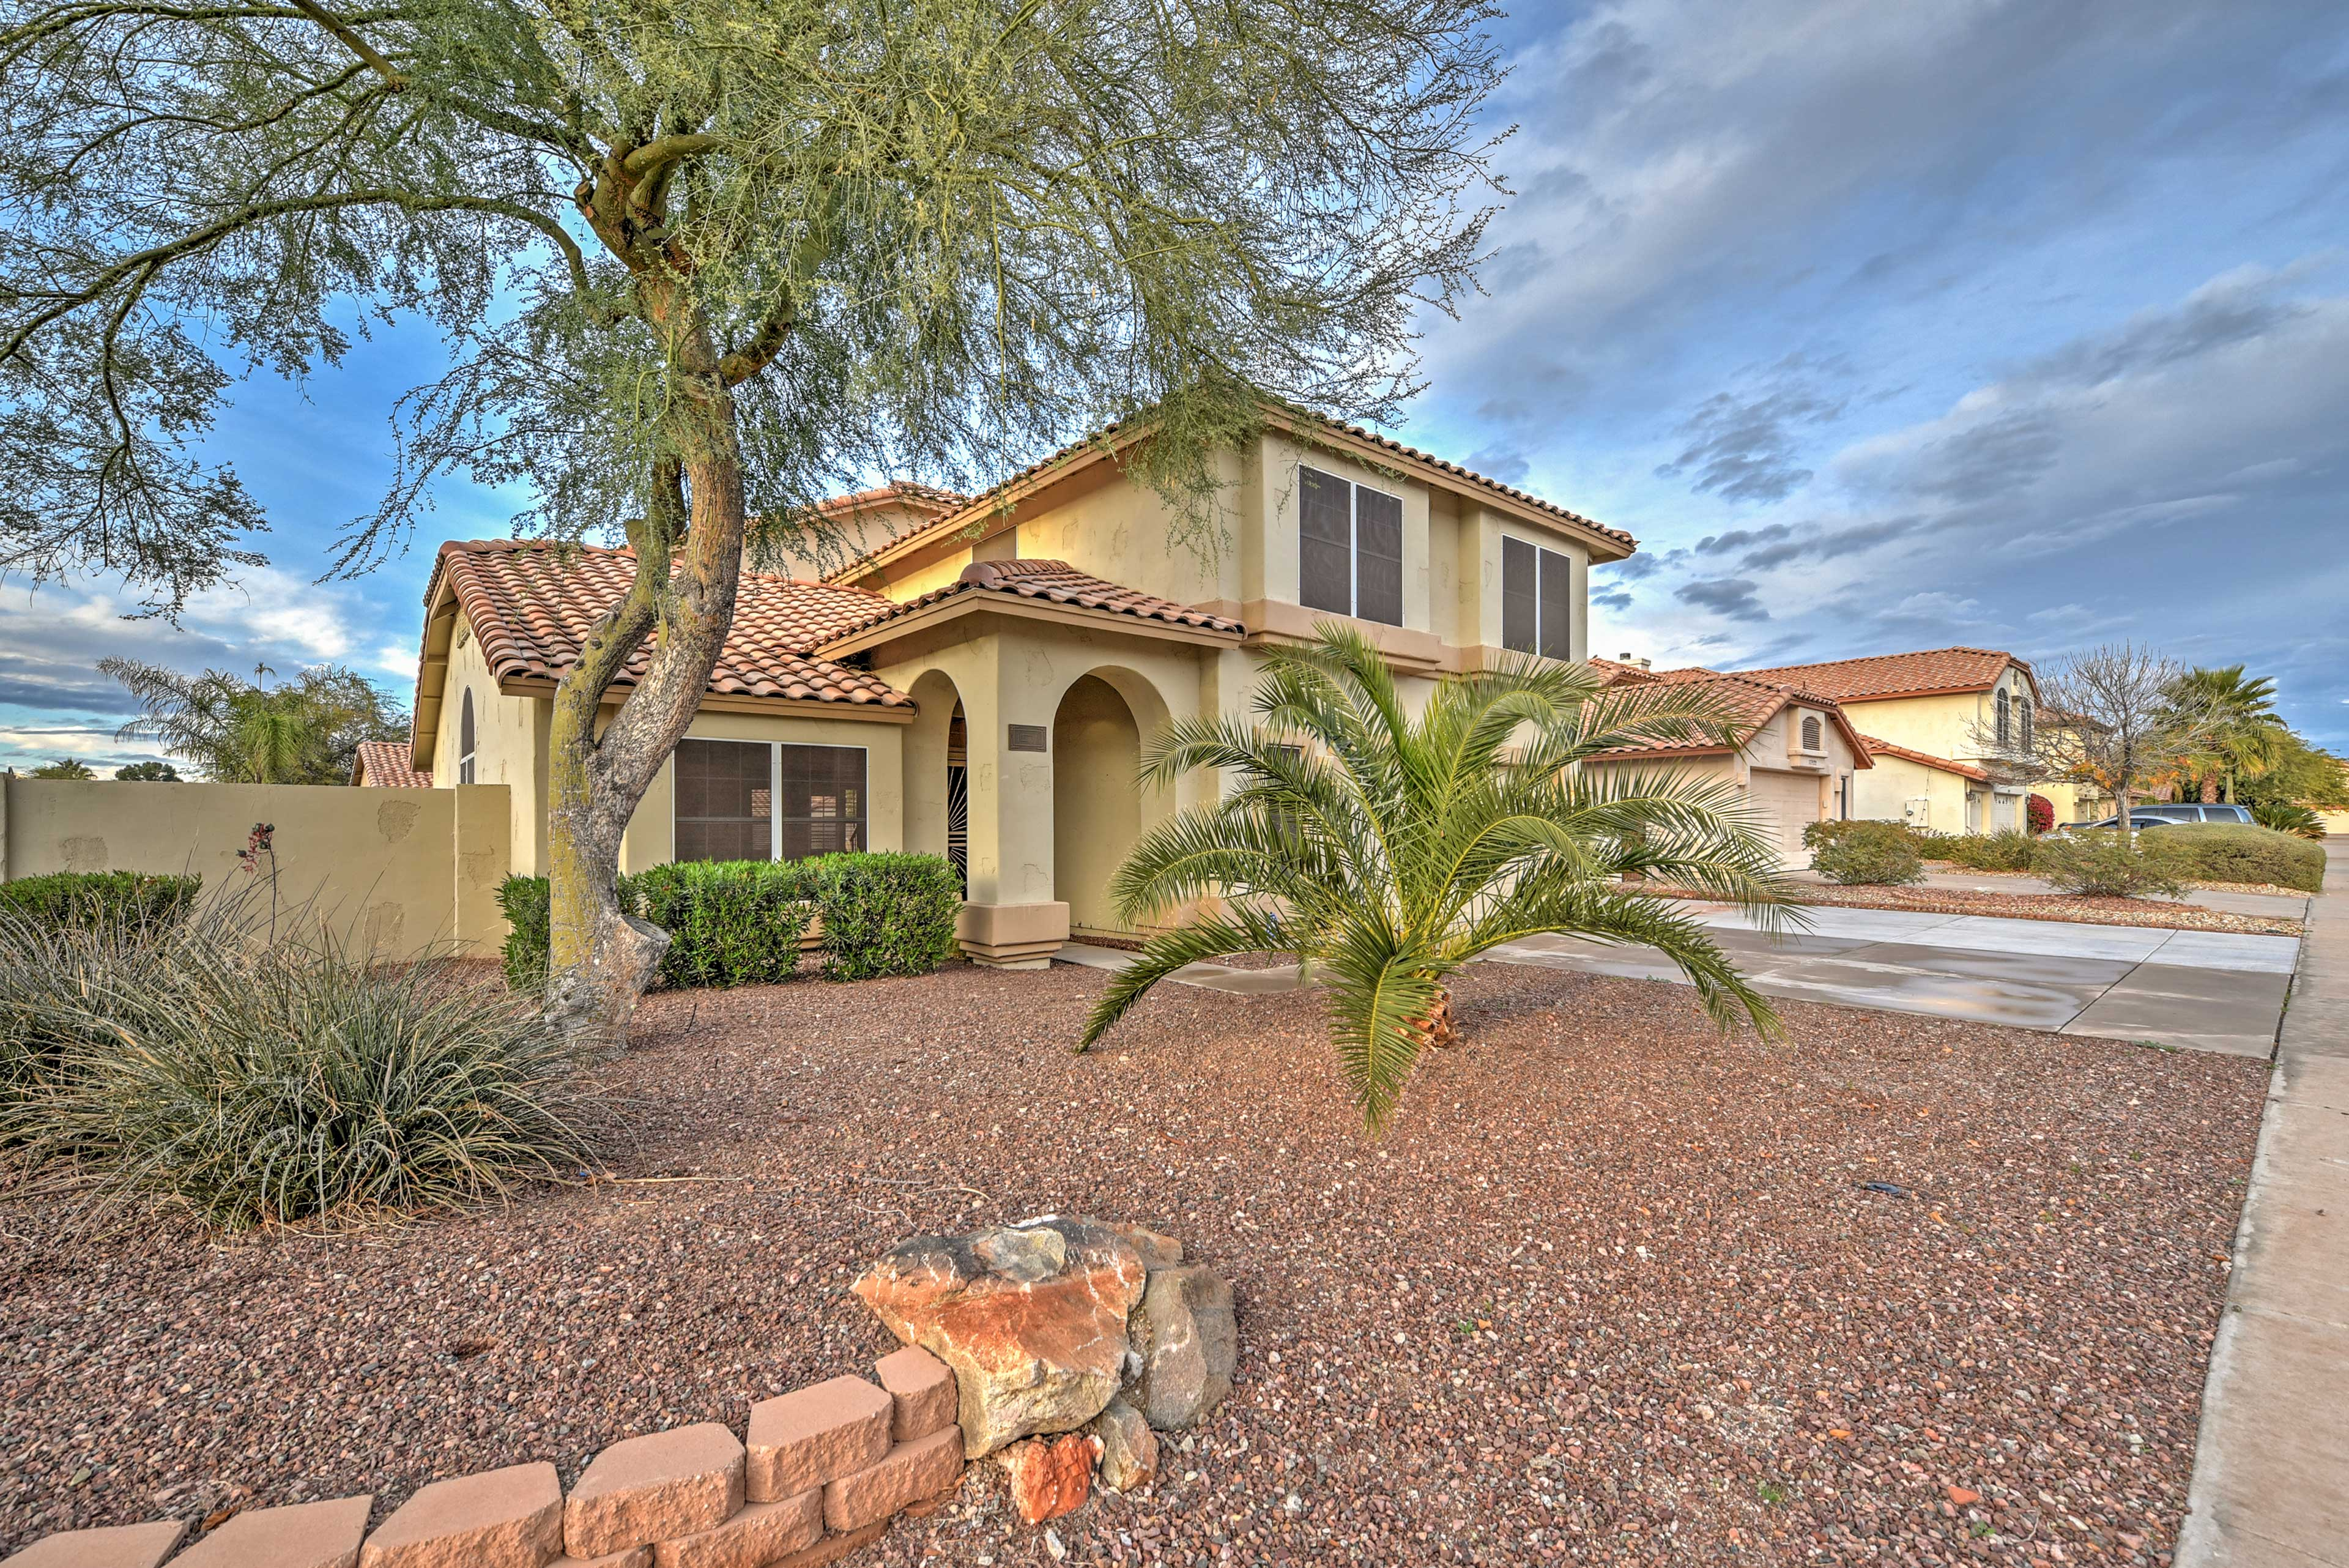 There's plenty of space for your whole crew in this 4 bedroom, 2-5 bath home.